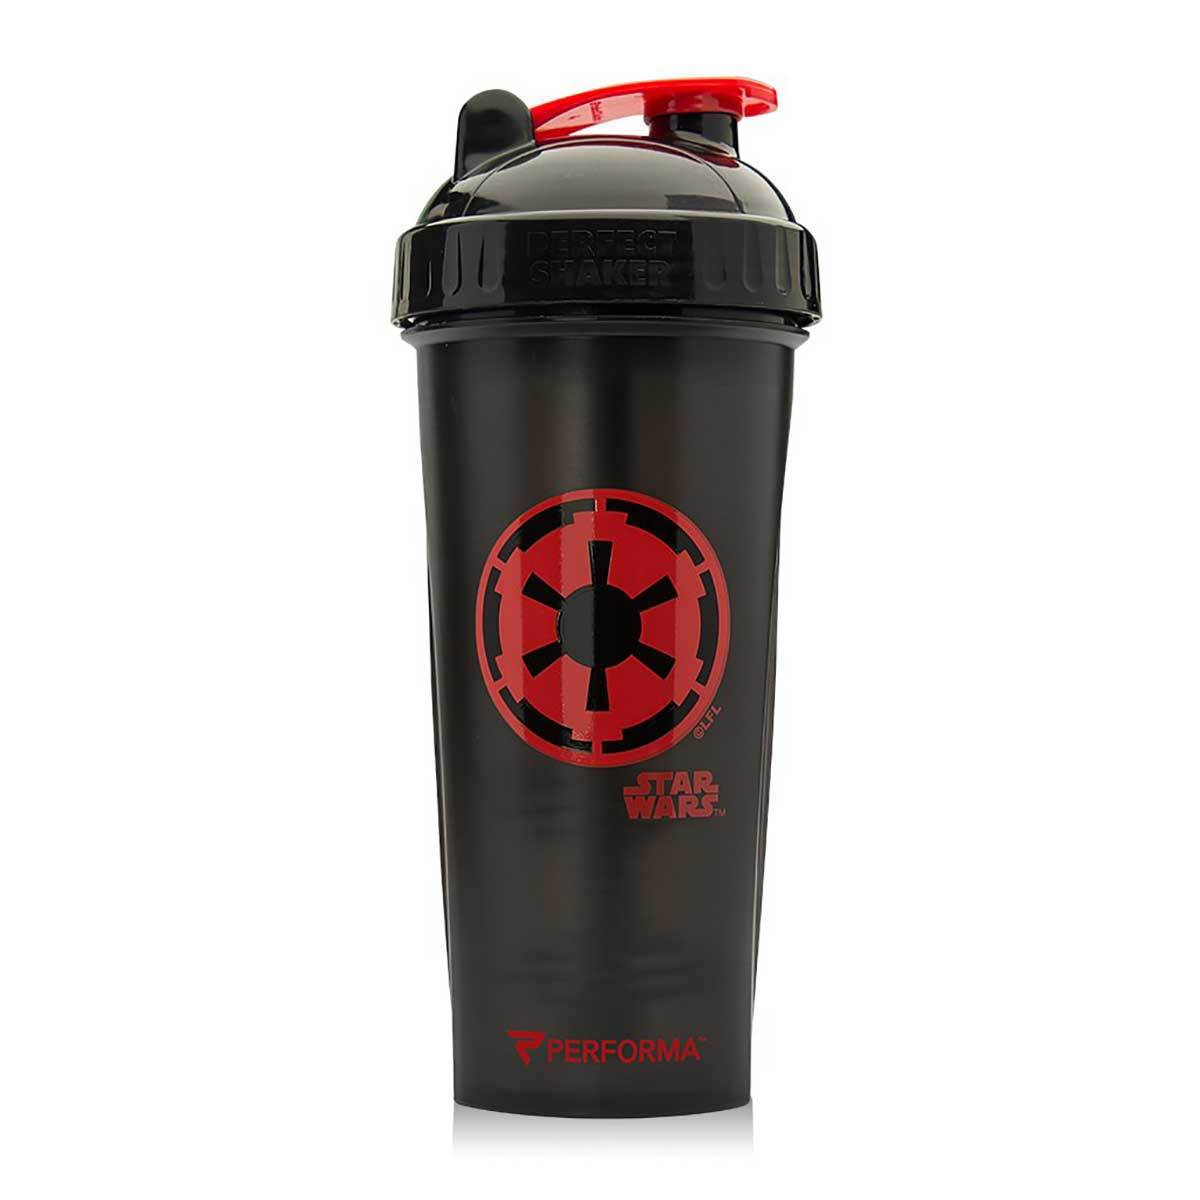 Star Wars Galactic Empire Shaker Bottle 28oz Fitness Accessories and Apparel PerfectShaker  (1059313352747)